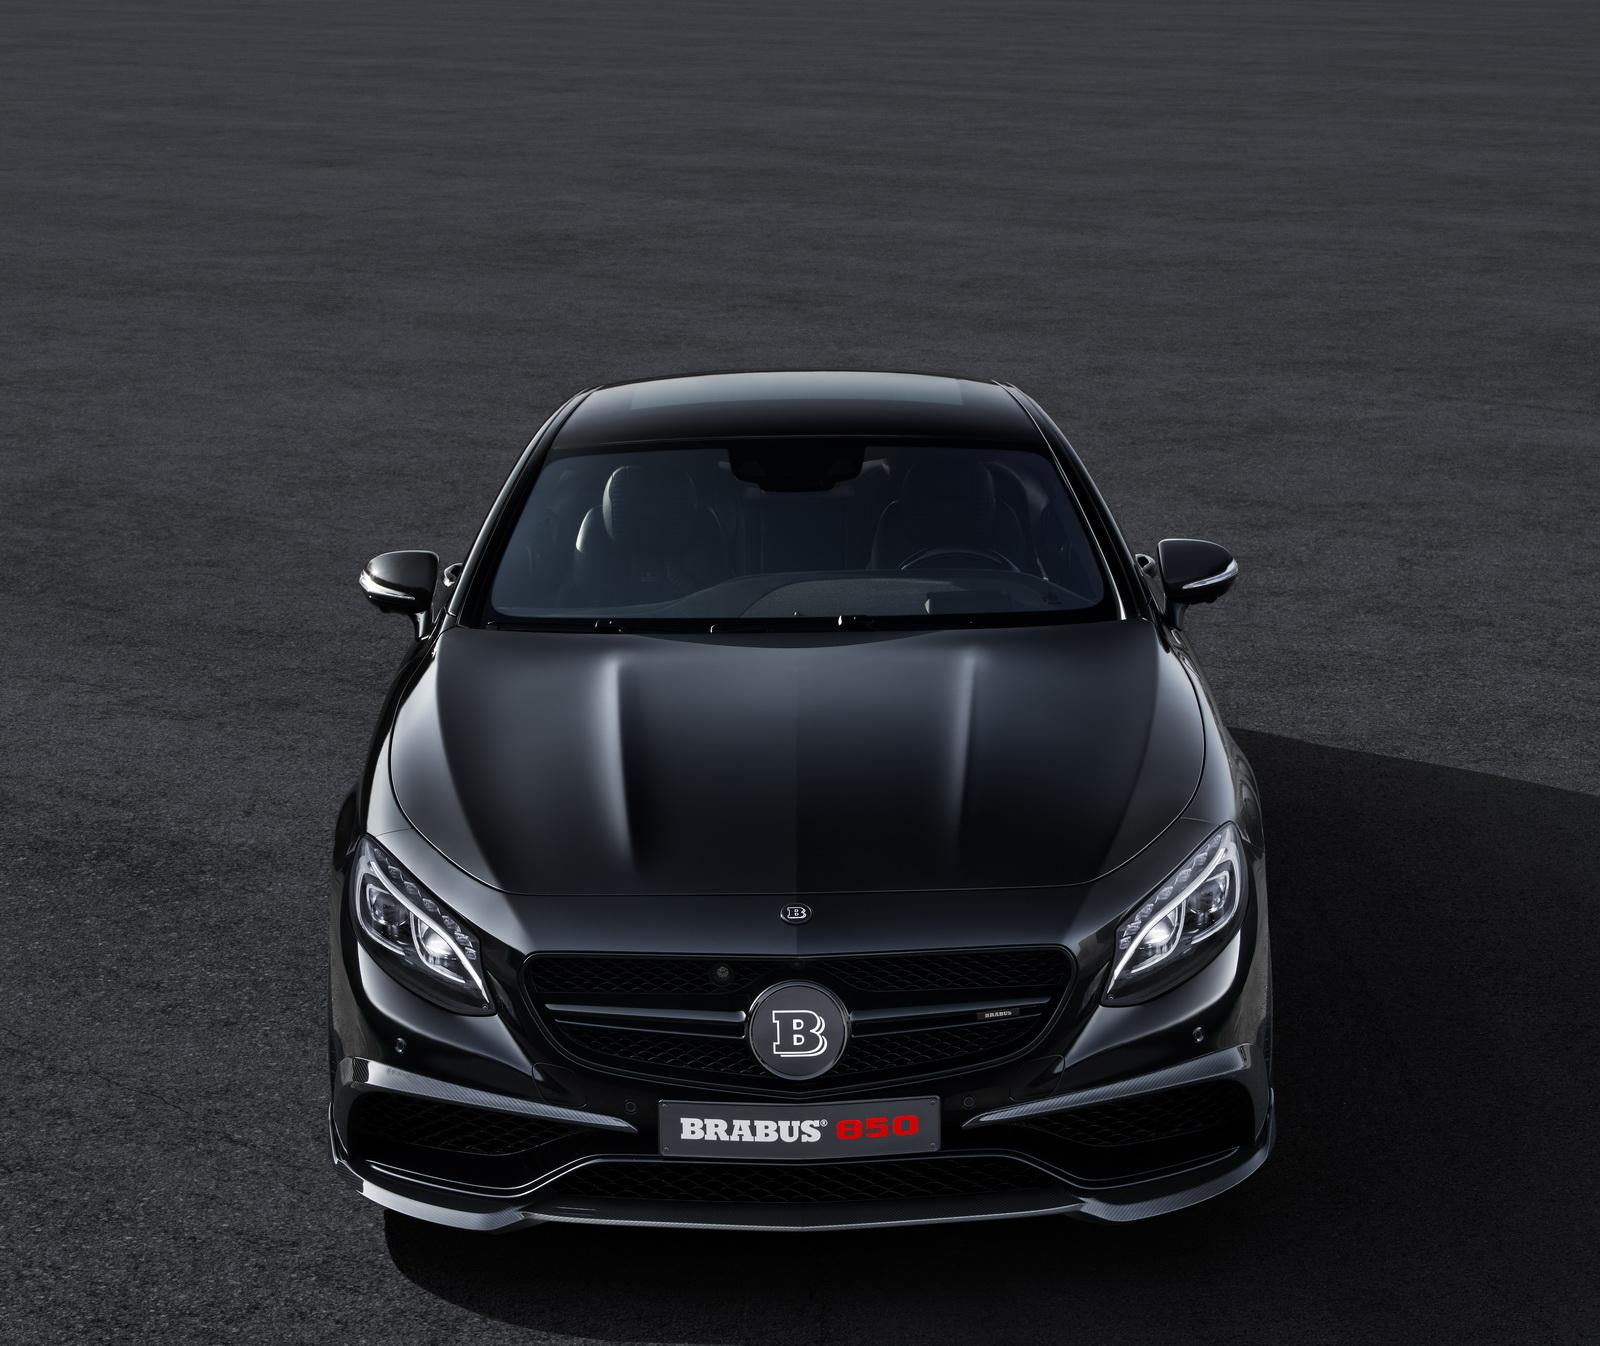 mercedes tuning 625kw 1450nm brabus 850 6 0 biturbo coupe unveiled. Black Bedroom Furniture Sets. Home Design Ideas